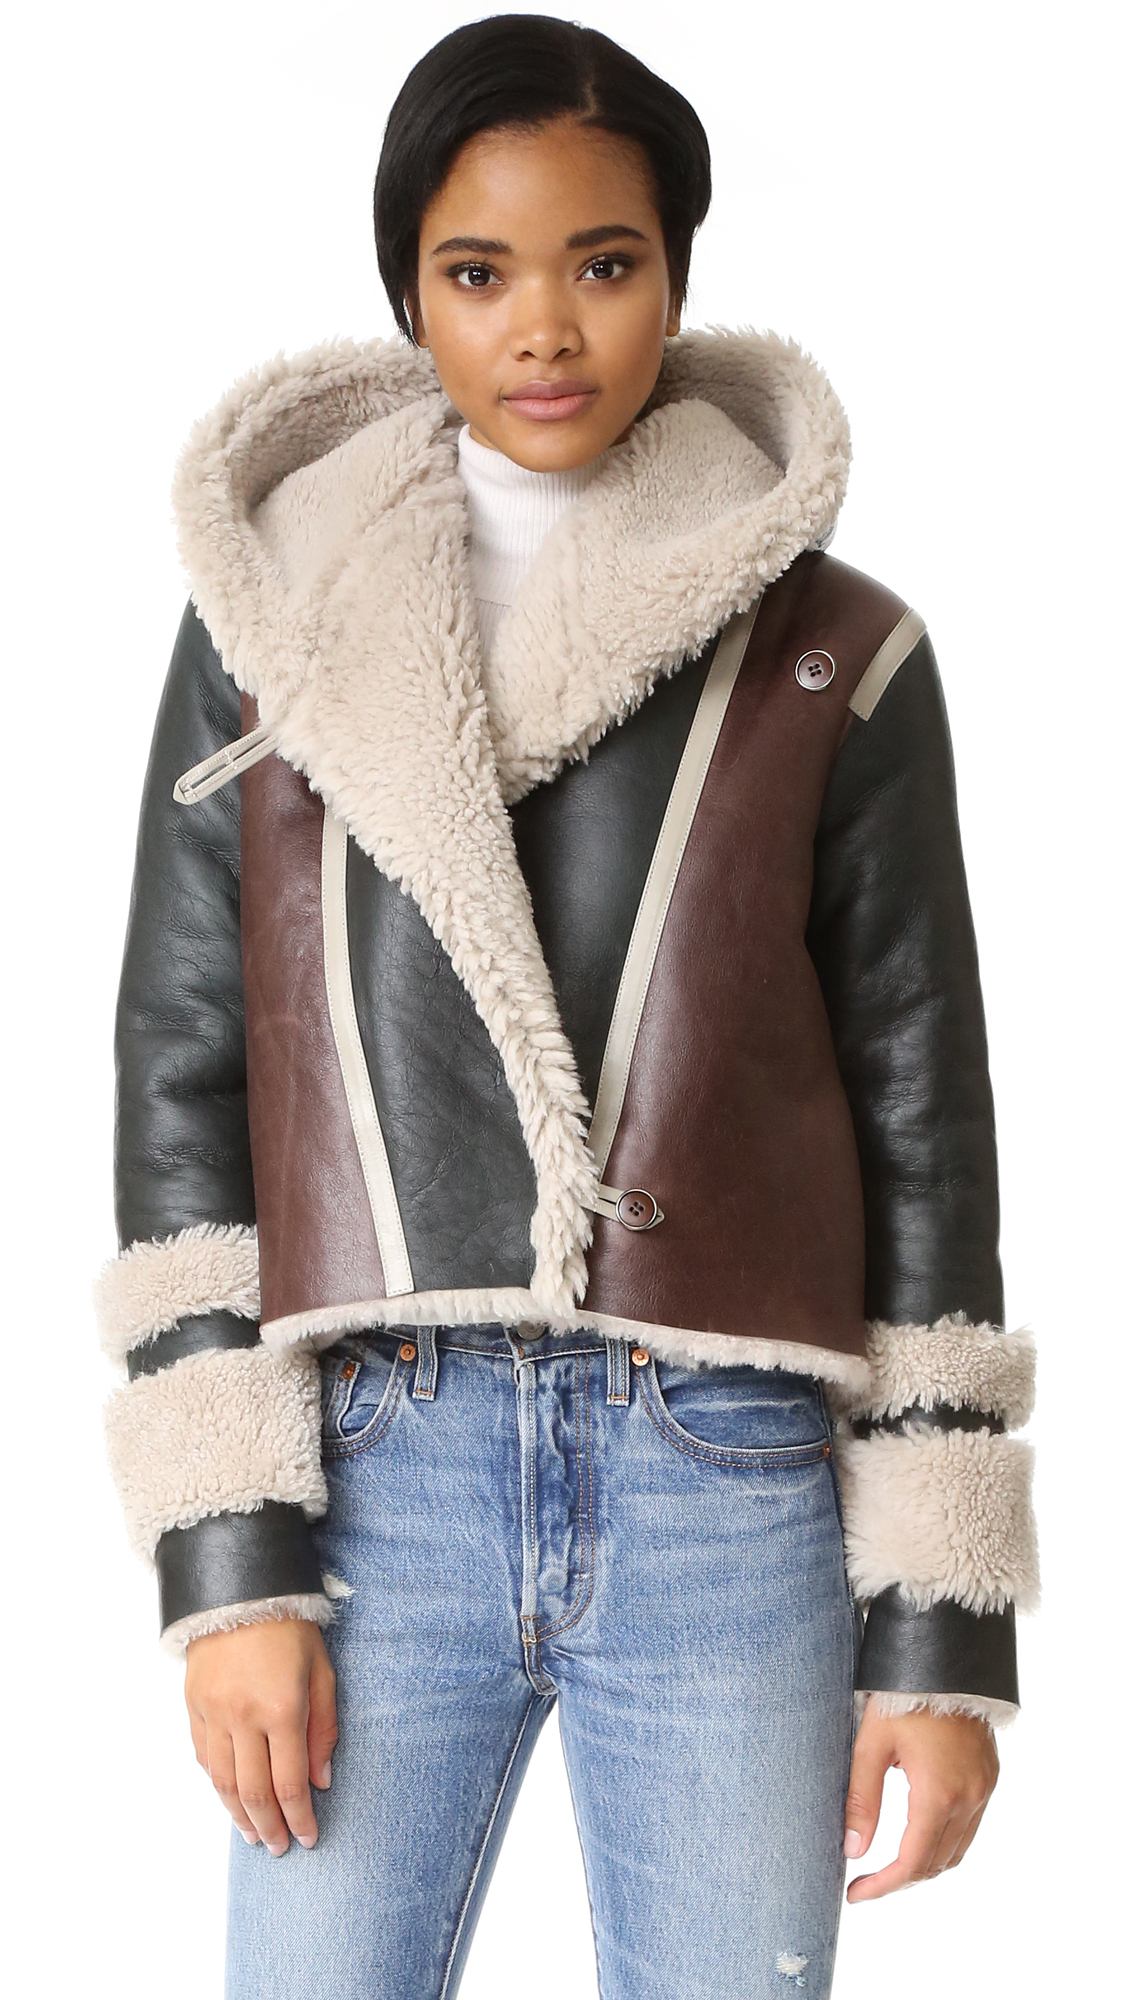 A hooded VEDA jacket made from plush, colorblock shearling. Button closures and on seam pockets. Long sleeves. Unlined. Fabric: Dyed lamb shearling, from Spain. Leather clean. Imported, Turkey. Measurements Length: 21.25in / 54cm, from shoulder Measurements from